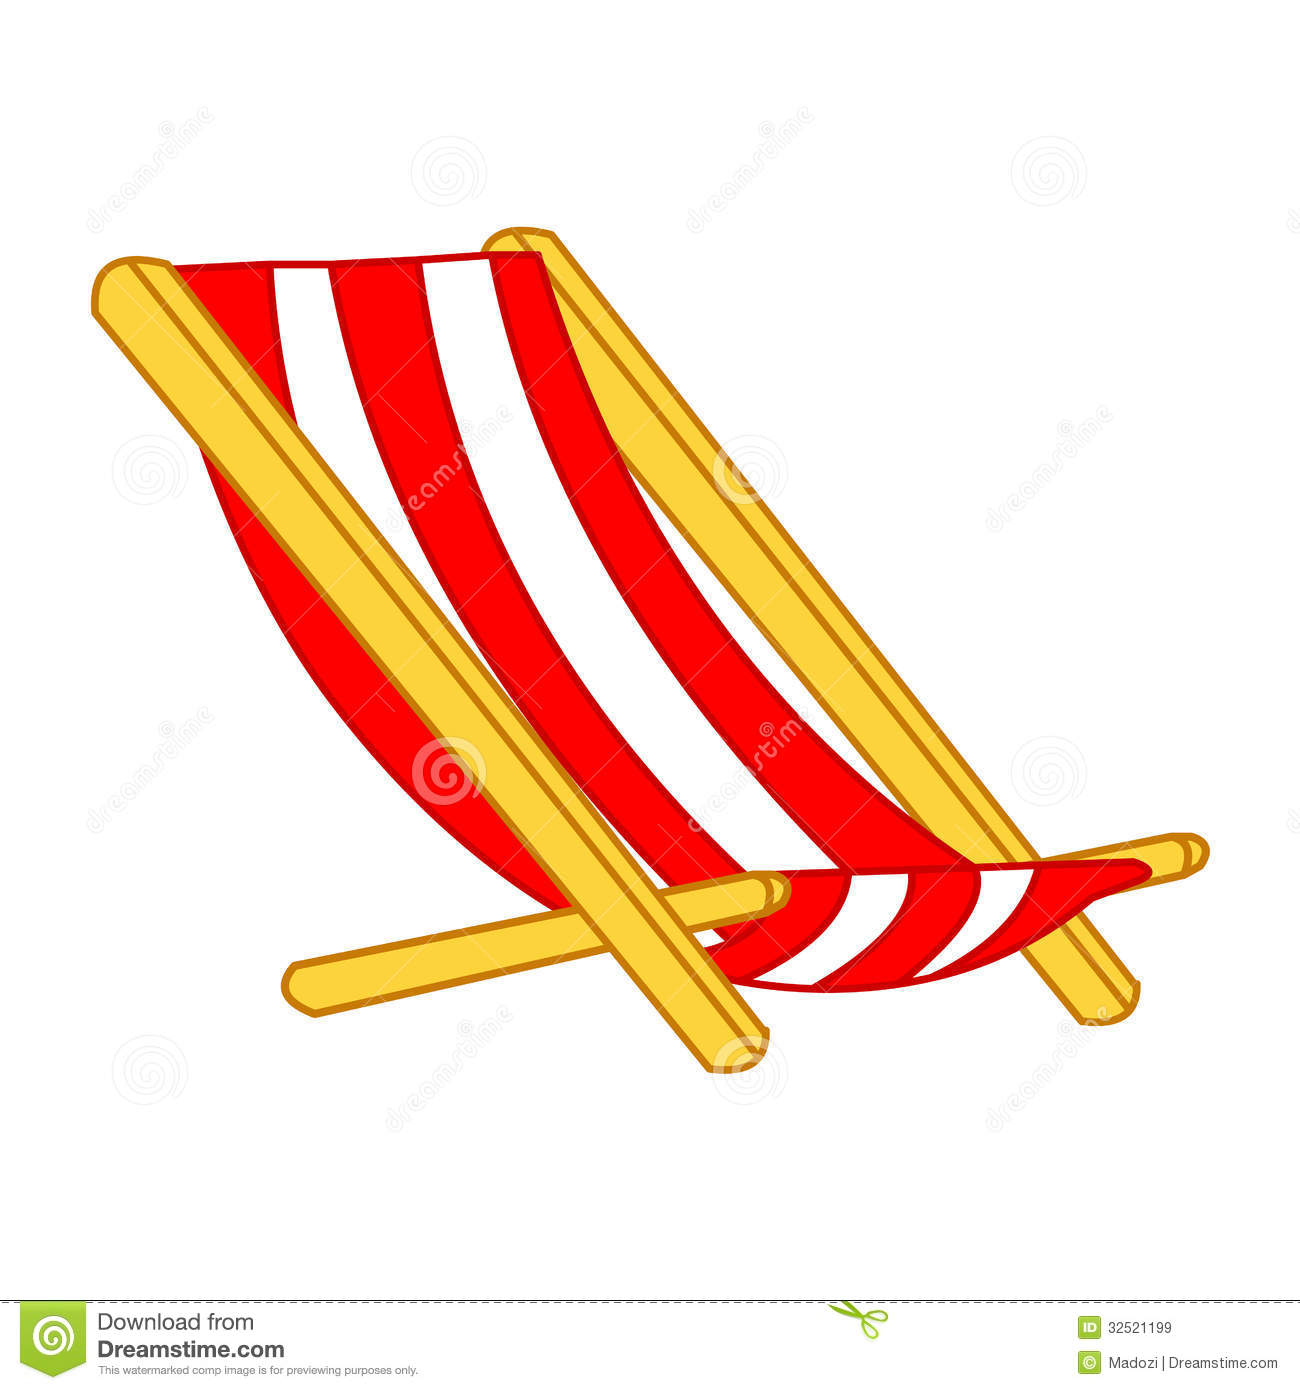 Sonnenstuhl Clipart Beach Chair Clip Art Look At Clip Art Images Clipartlook